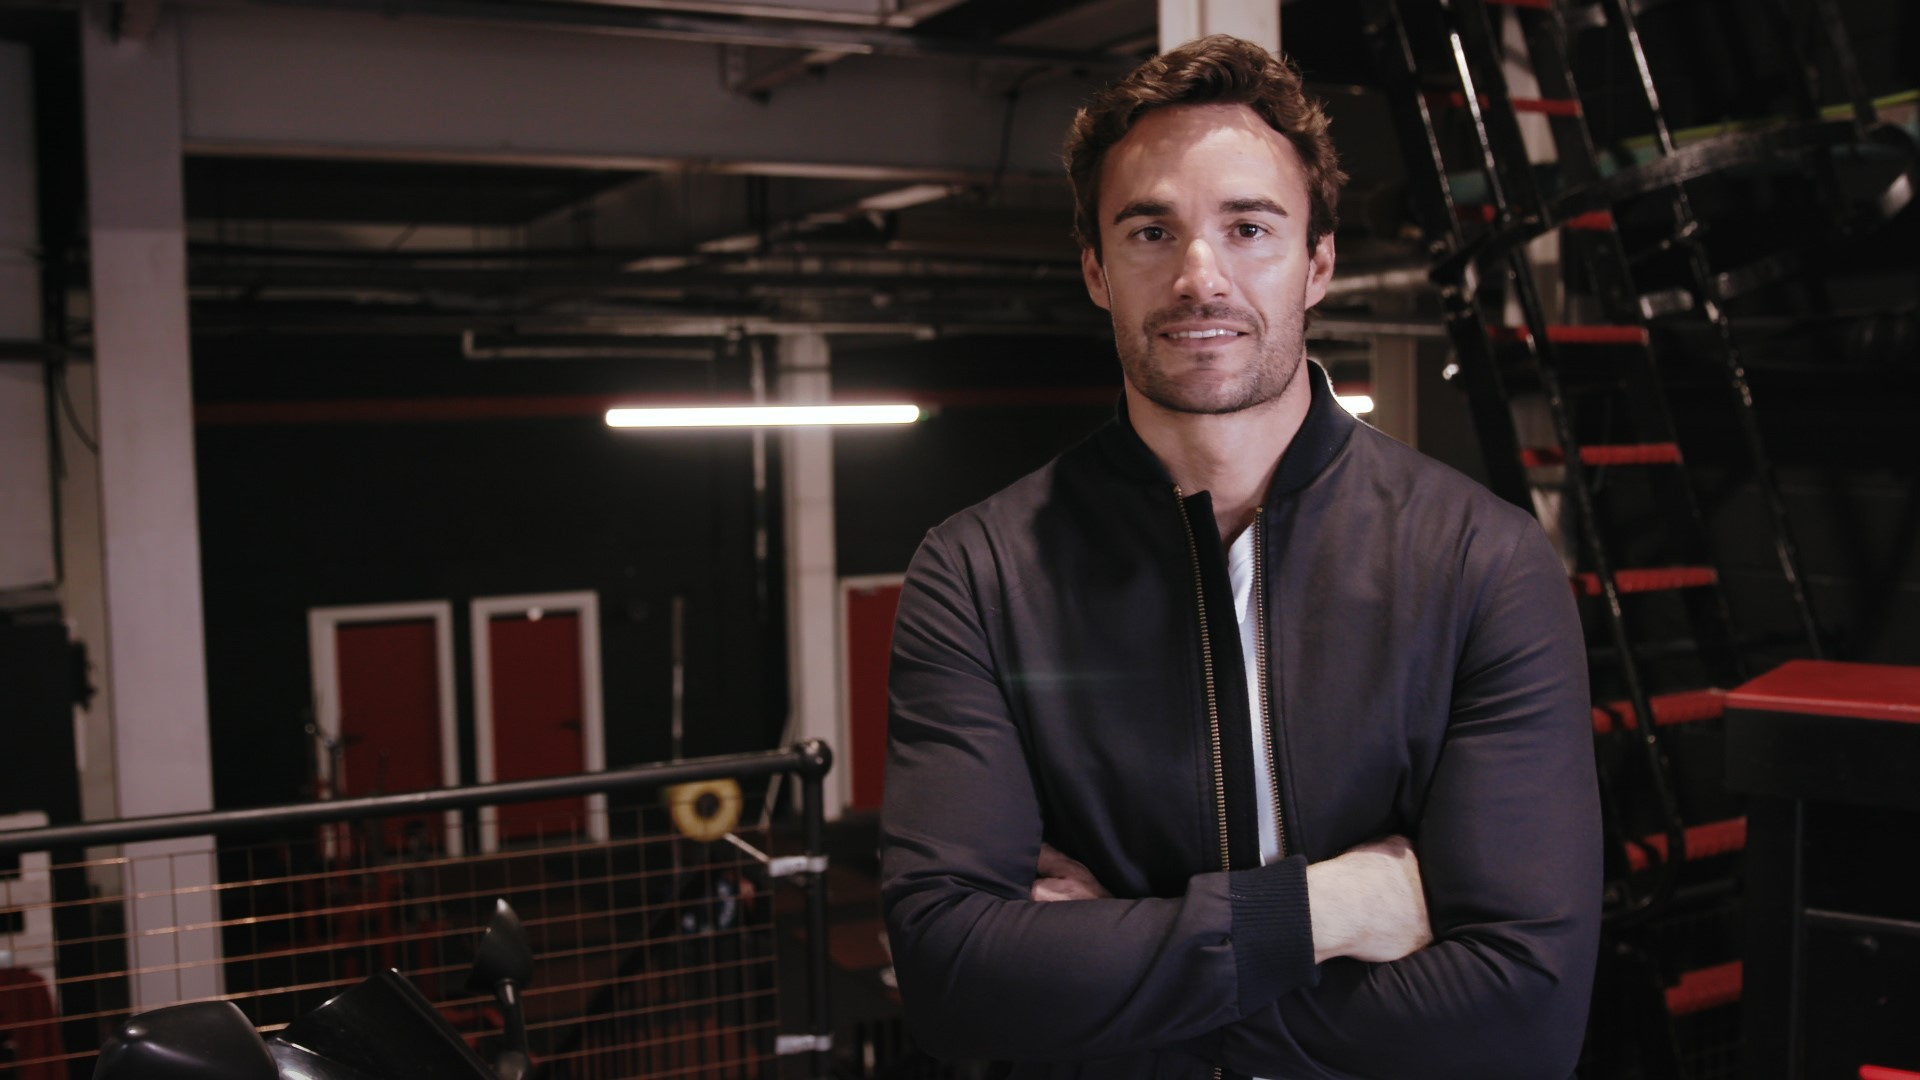 Ex- Scotland rugby player and Strictly Come Dancing contestant, Thom Evans, is one of the three well-known celebrities who are fronting the new campaign aimed at inspiring people about the role of lean red meat in a healthy diet